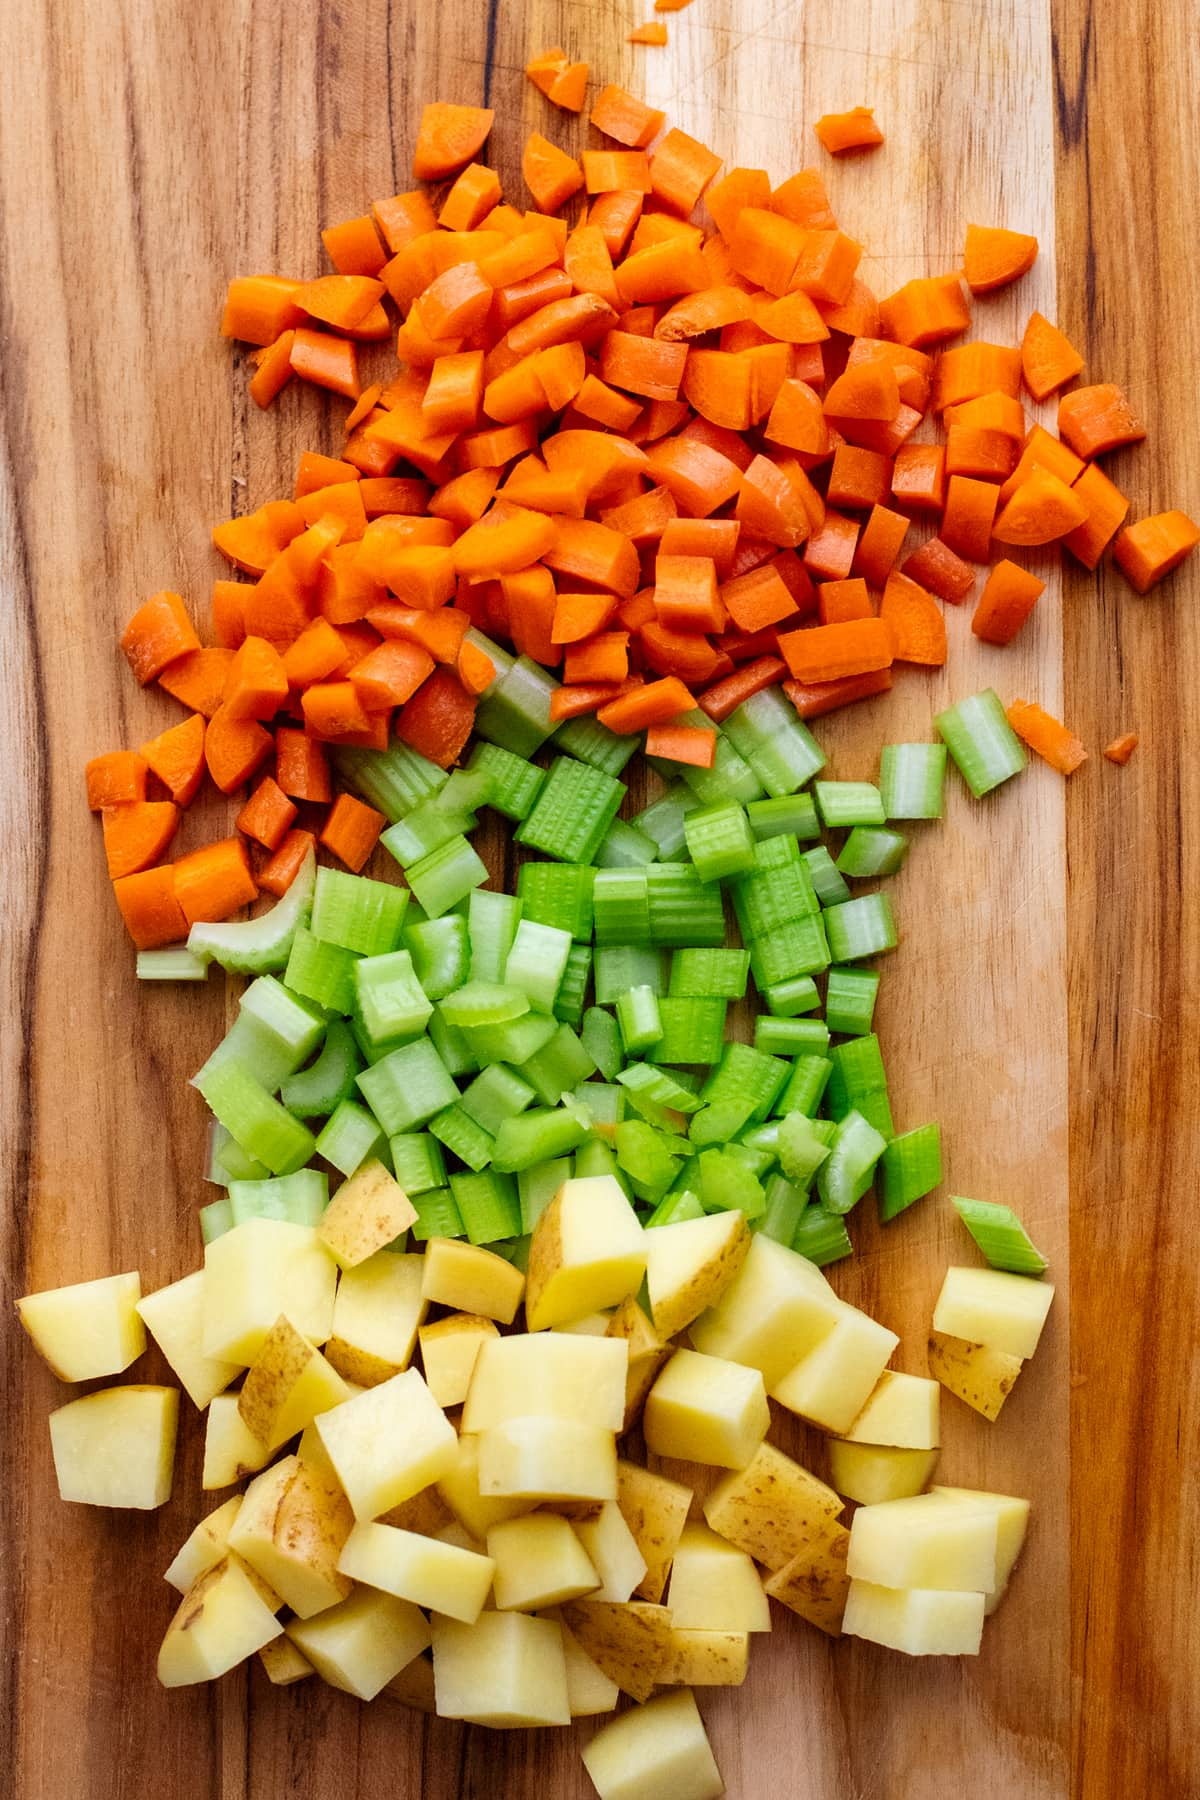 diced vegetables arranged on wooden cutting board.